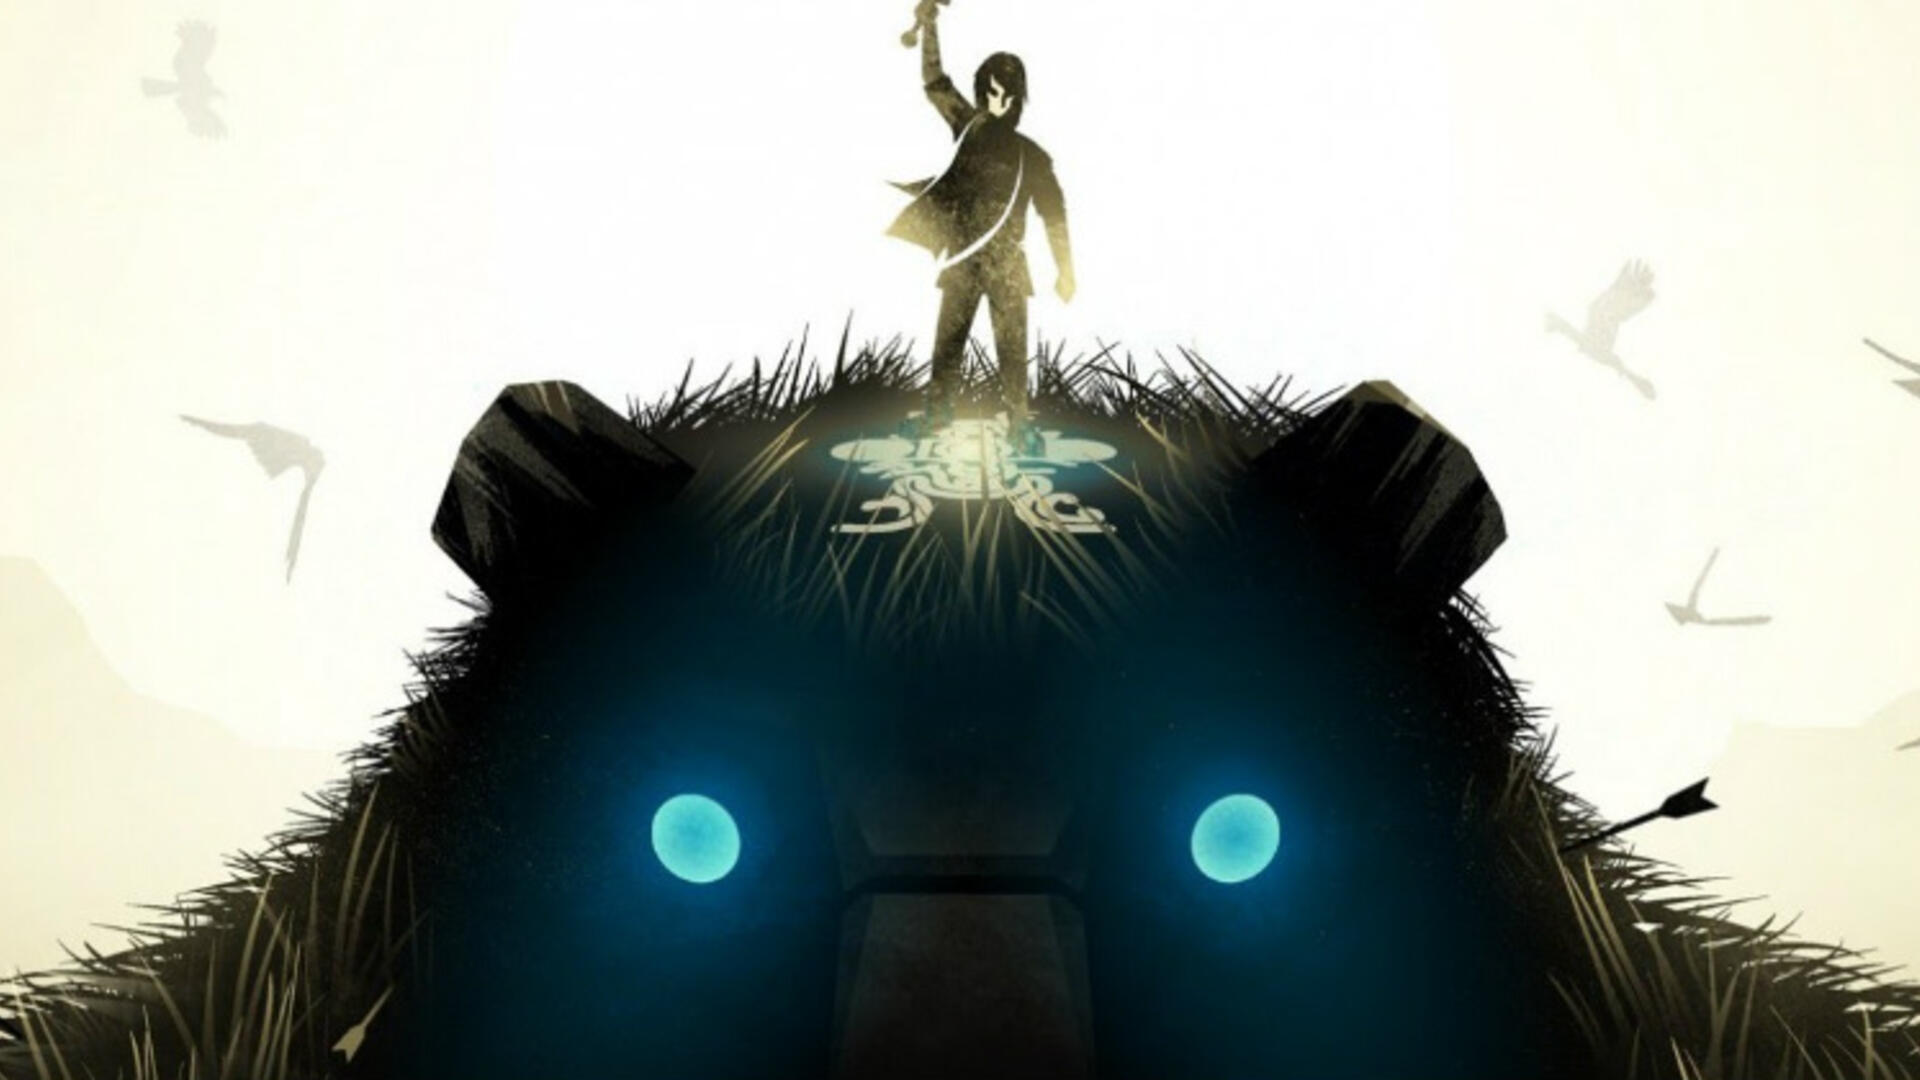 The 15 Best Games Since 2000, Number 4: Shadow of the Colossus